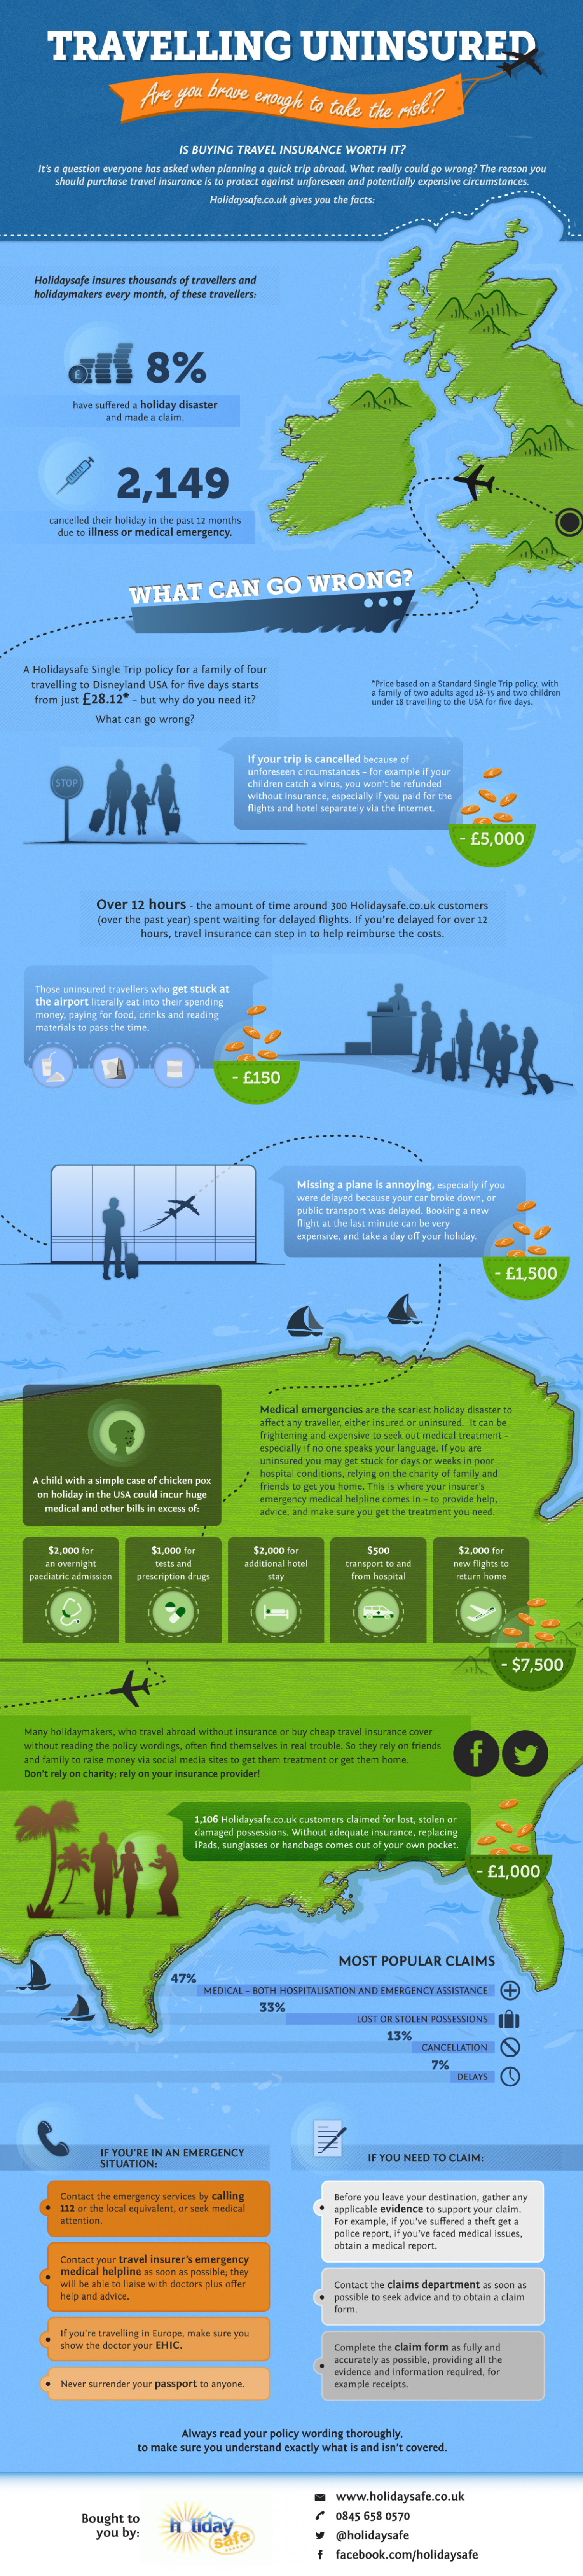 Travelling Uninsured - Are you Brave Enough to take the Risk? Infographic